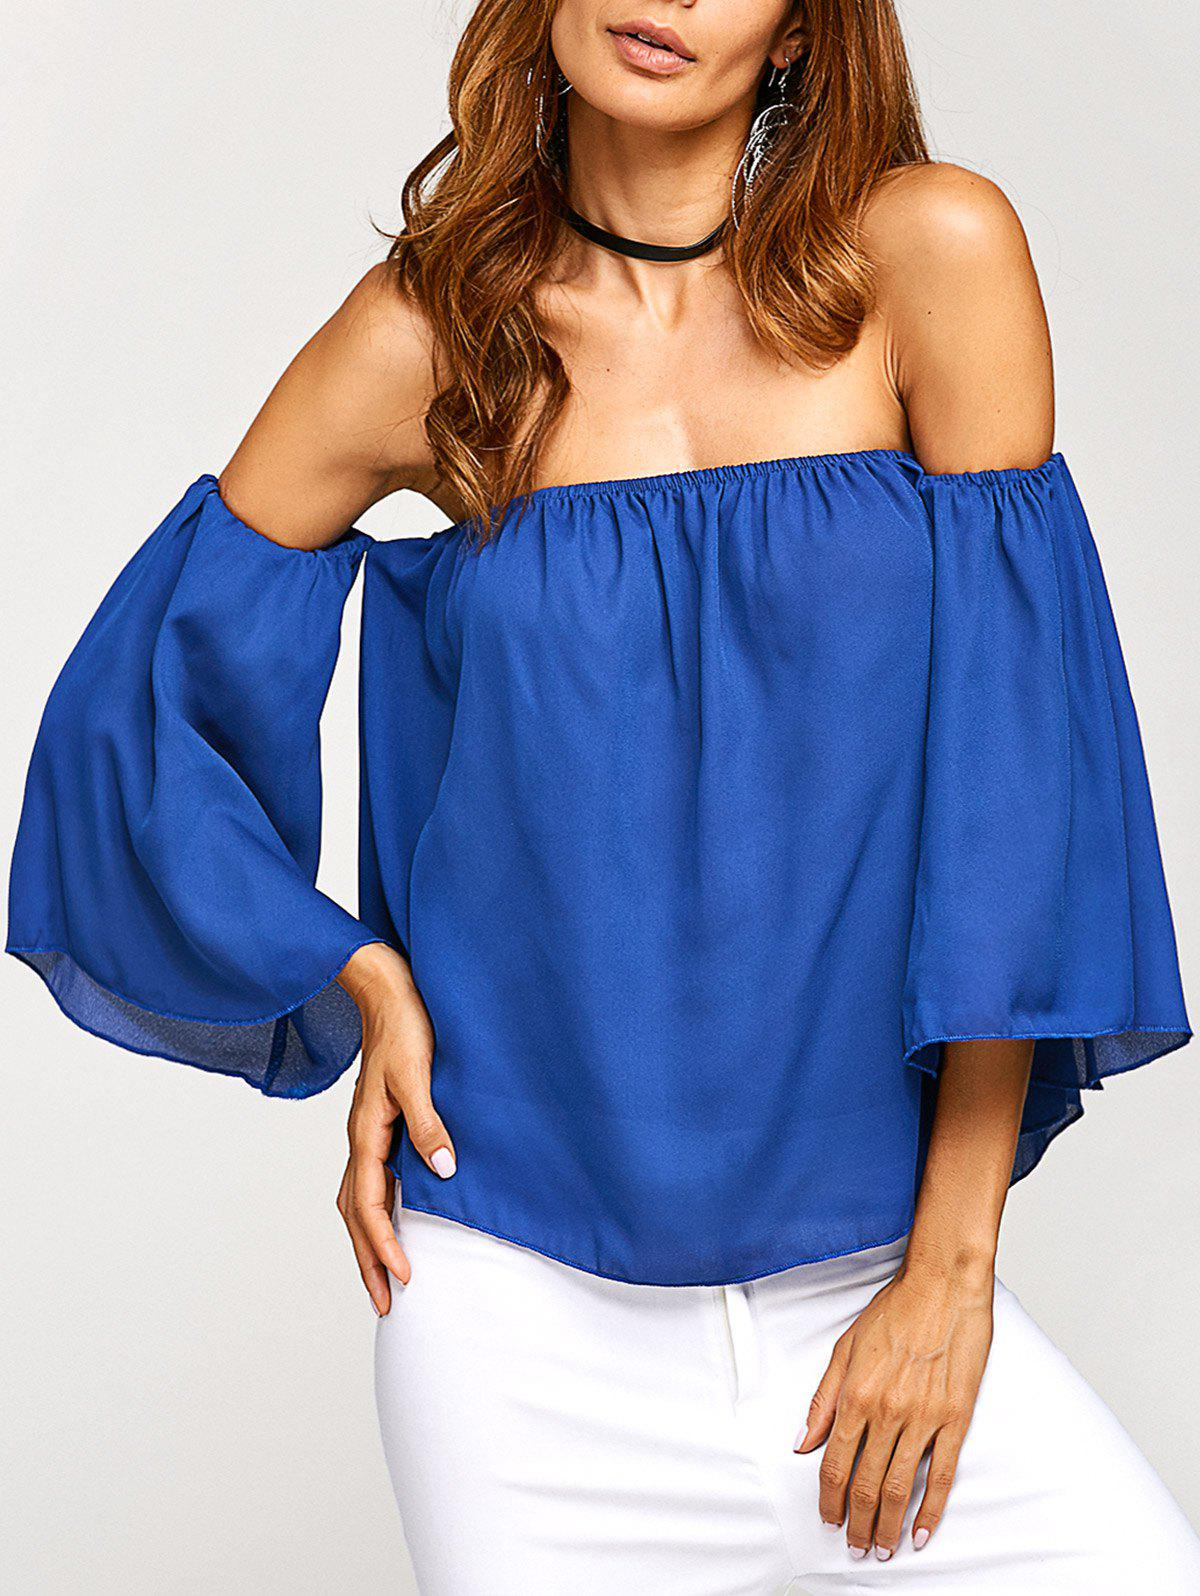 Off The Shoulder Backless Chiffon Blouse - BLUE S